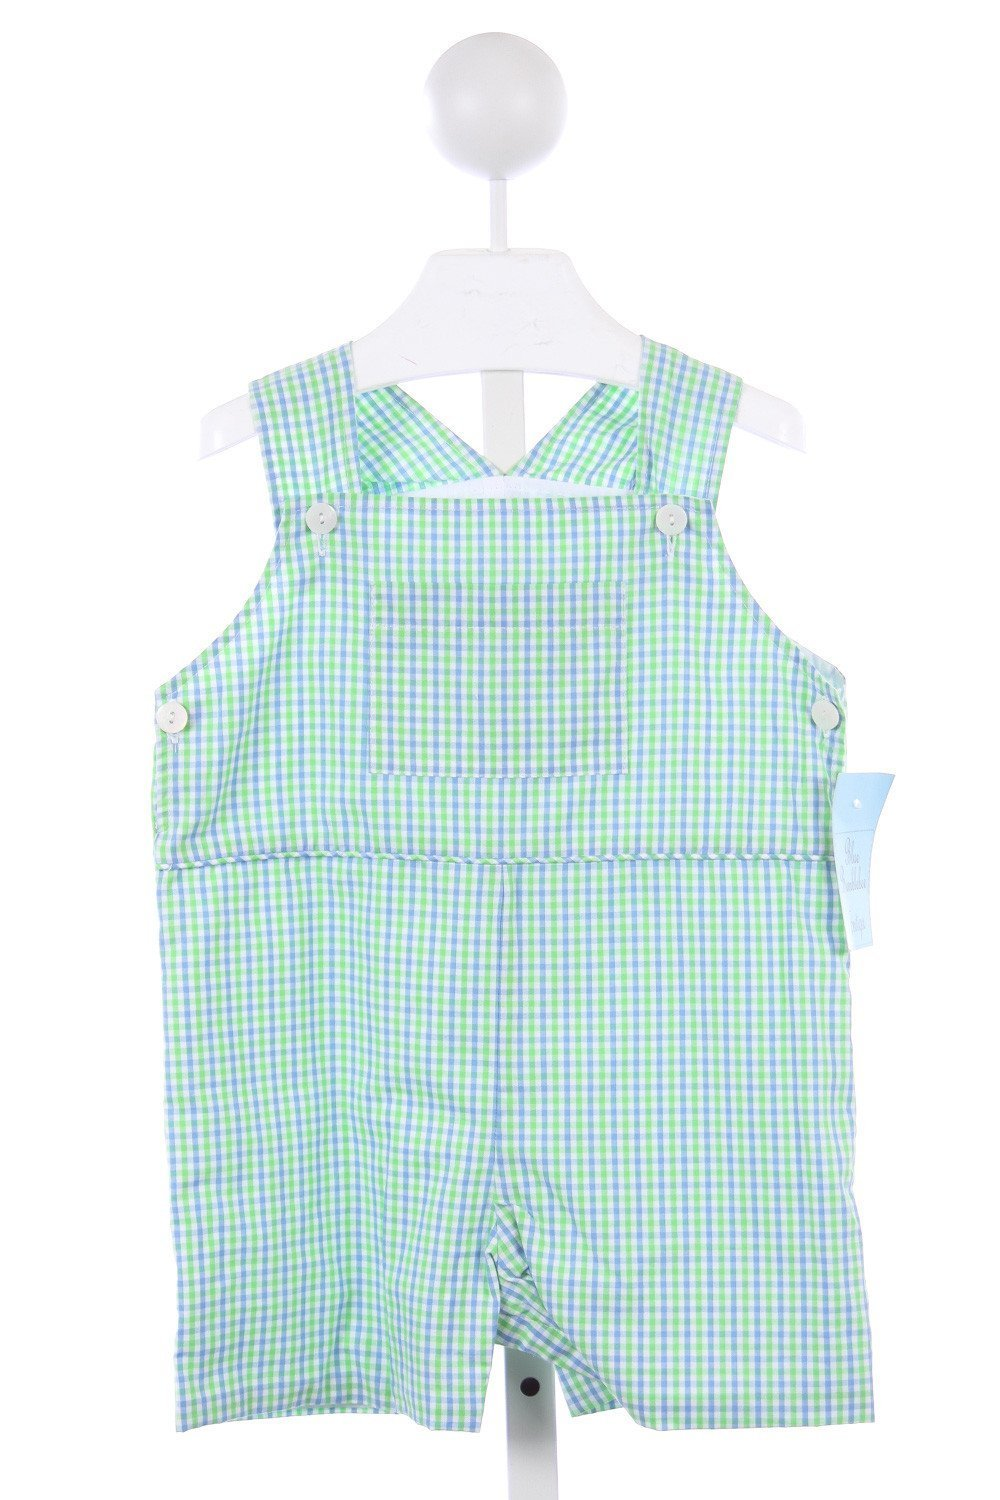 BLUE BUMBLEBEE GREEN AND BLUE GINGHAM SHORTALL